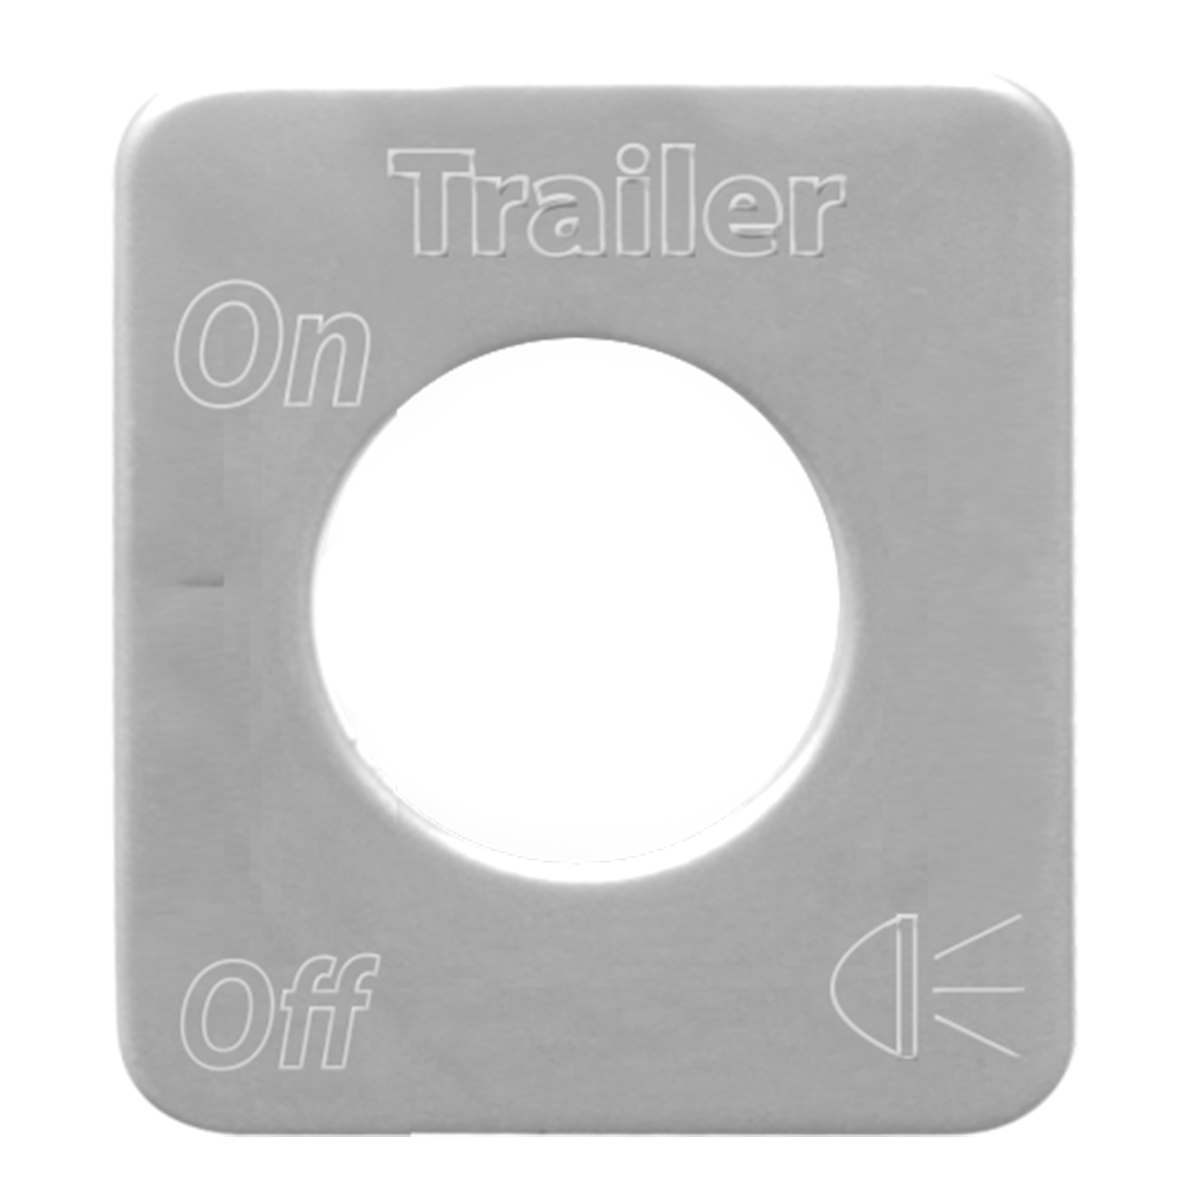 68524 Stainless Steel Trailer Light Switch Plate for KW